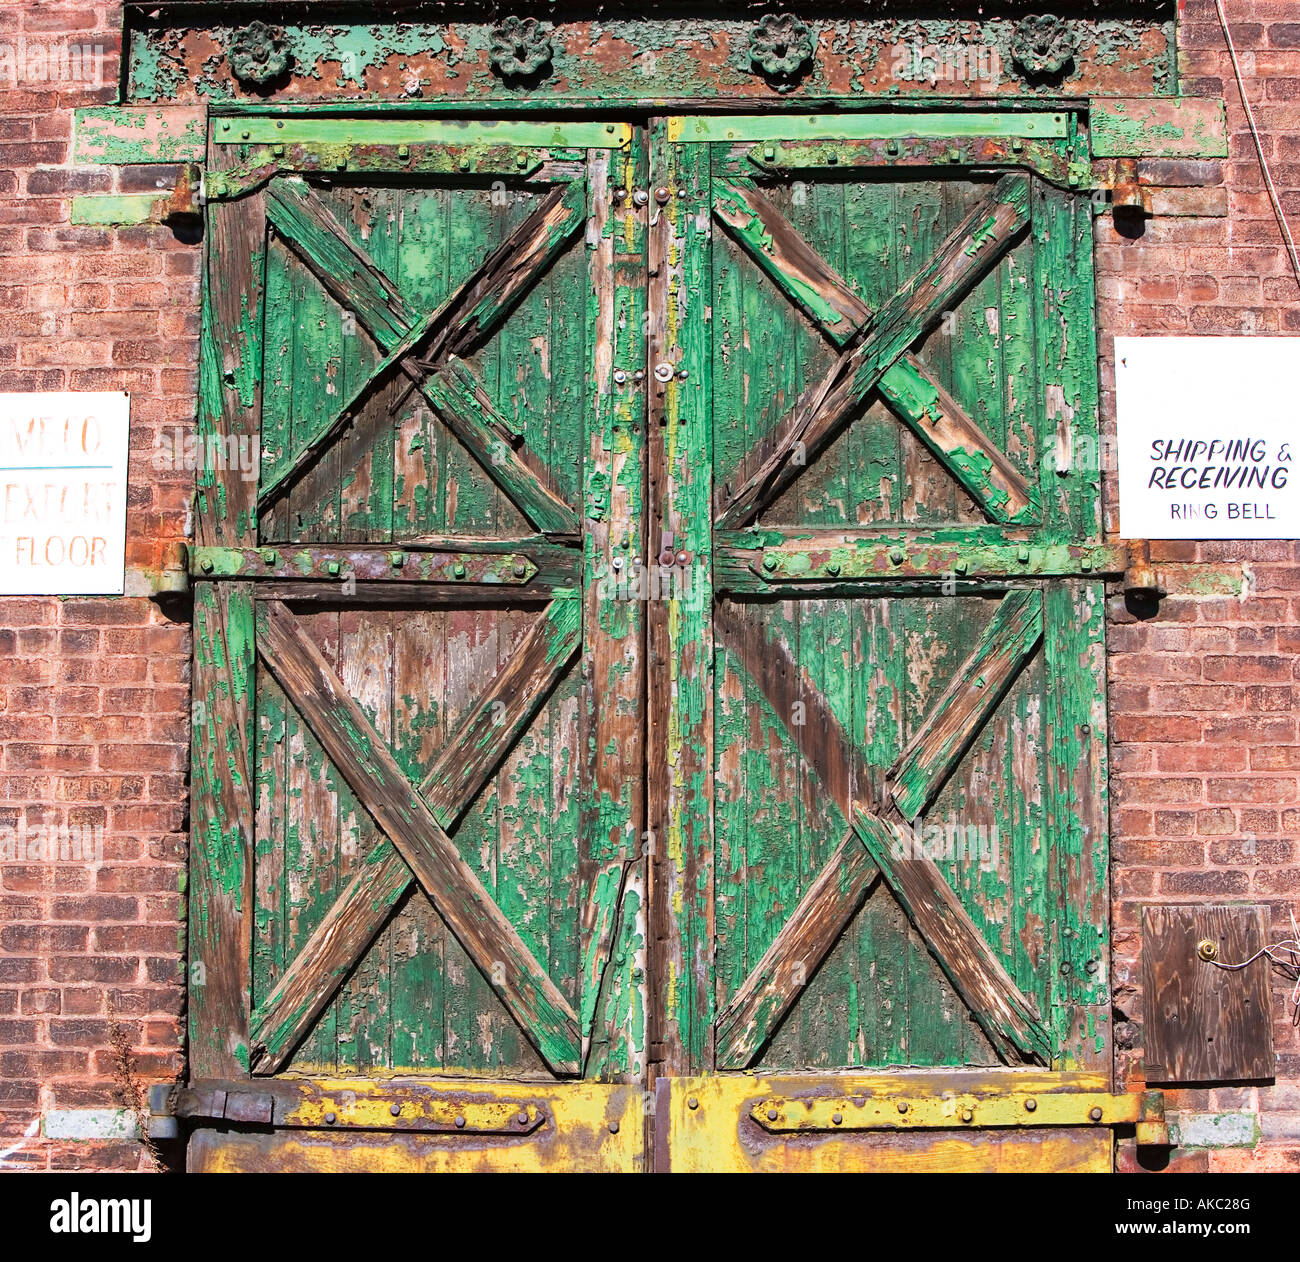 BARN DOORS, OLD PAINT, PAINT, PEELING, PEEL, ENTER, ENTRANCE, EXIT, OLD  WAREHOUSE, ANTIQUE, WOOD, - BARN DOORS, OLD PAINT, PAINT, PEELING, PEEL, ENTER, ENTRANCE, EXIT